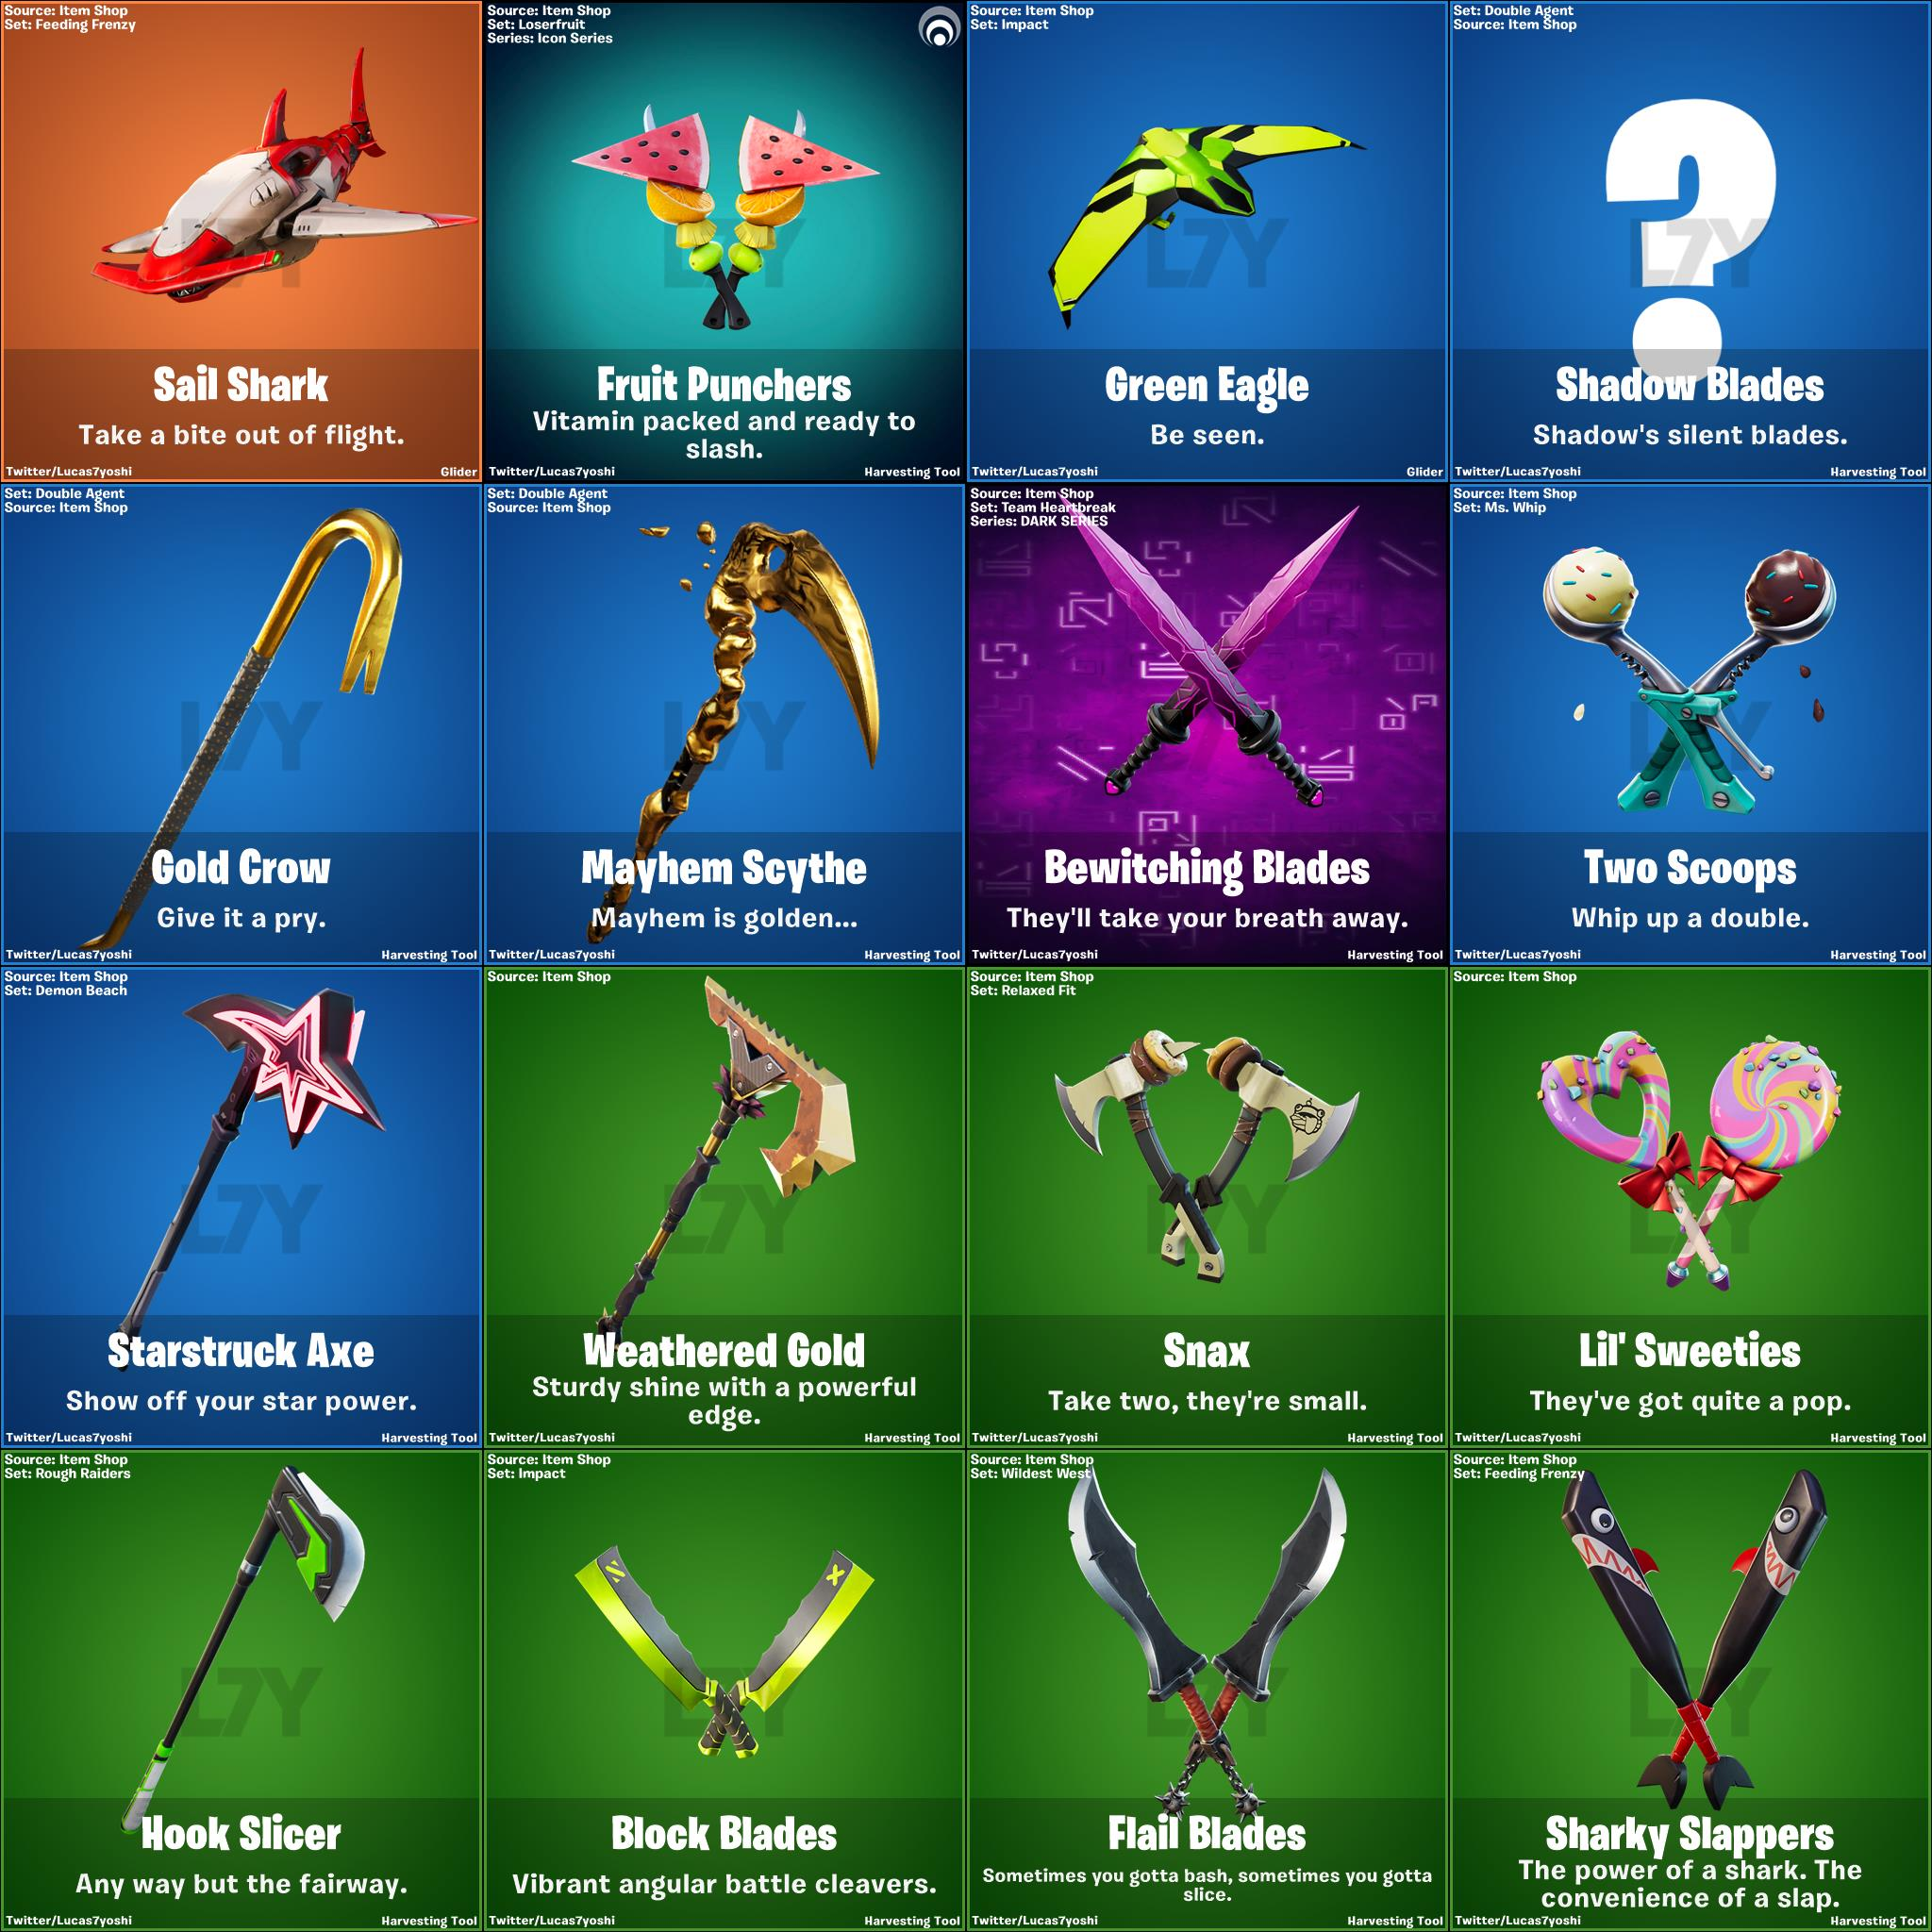 Leaked pickaxes and gliders from Fortnite Patch v13.20